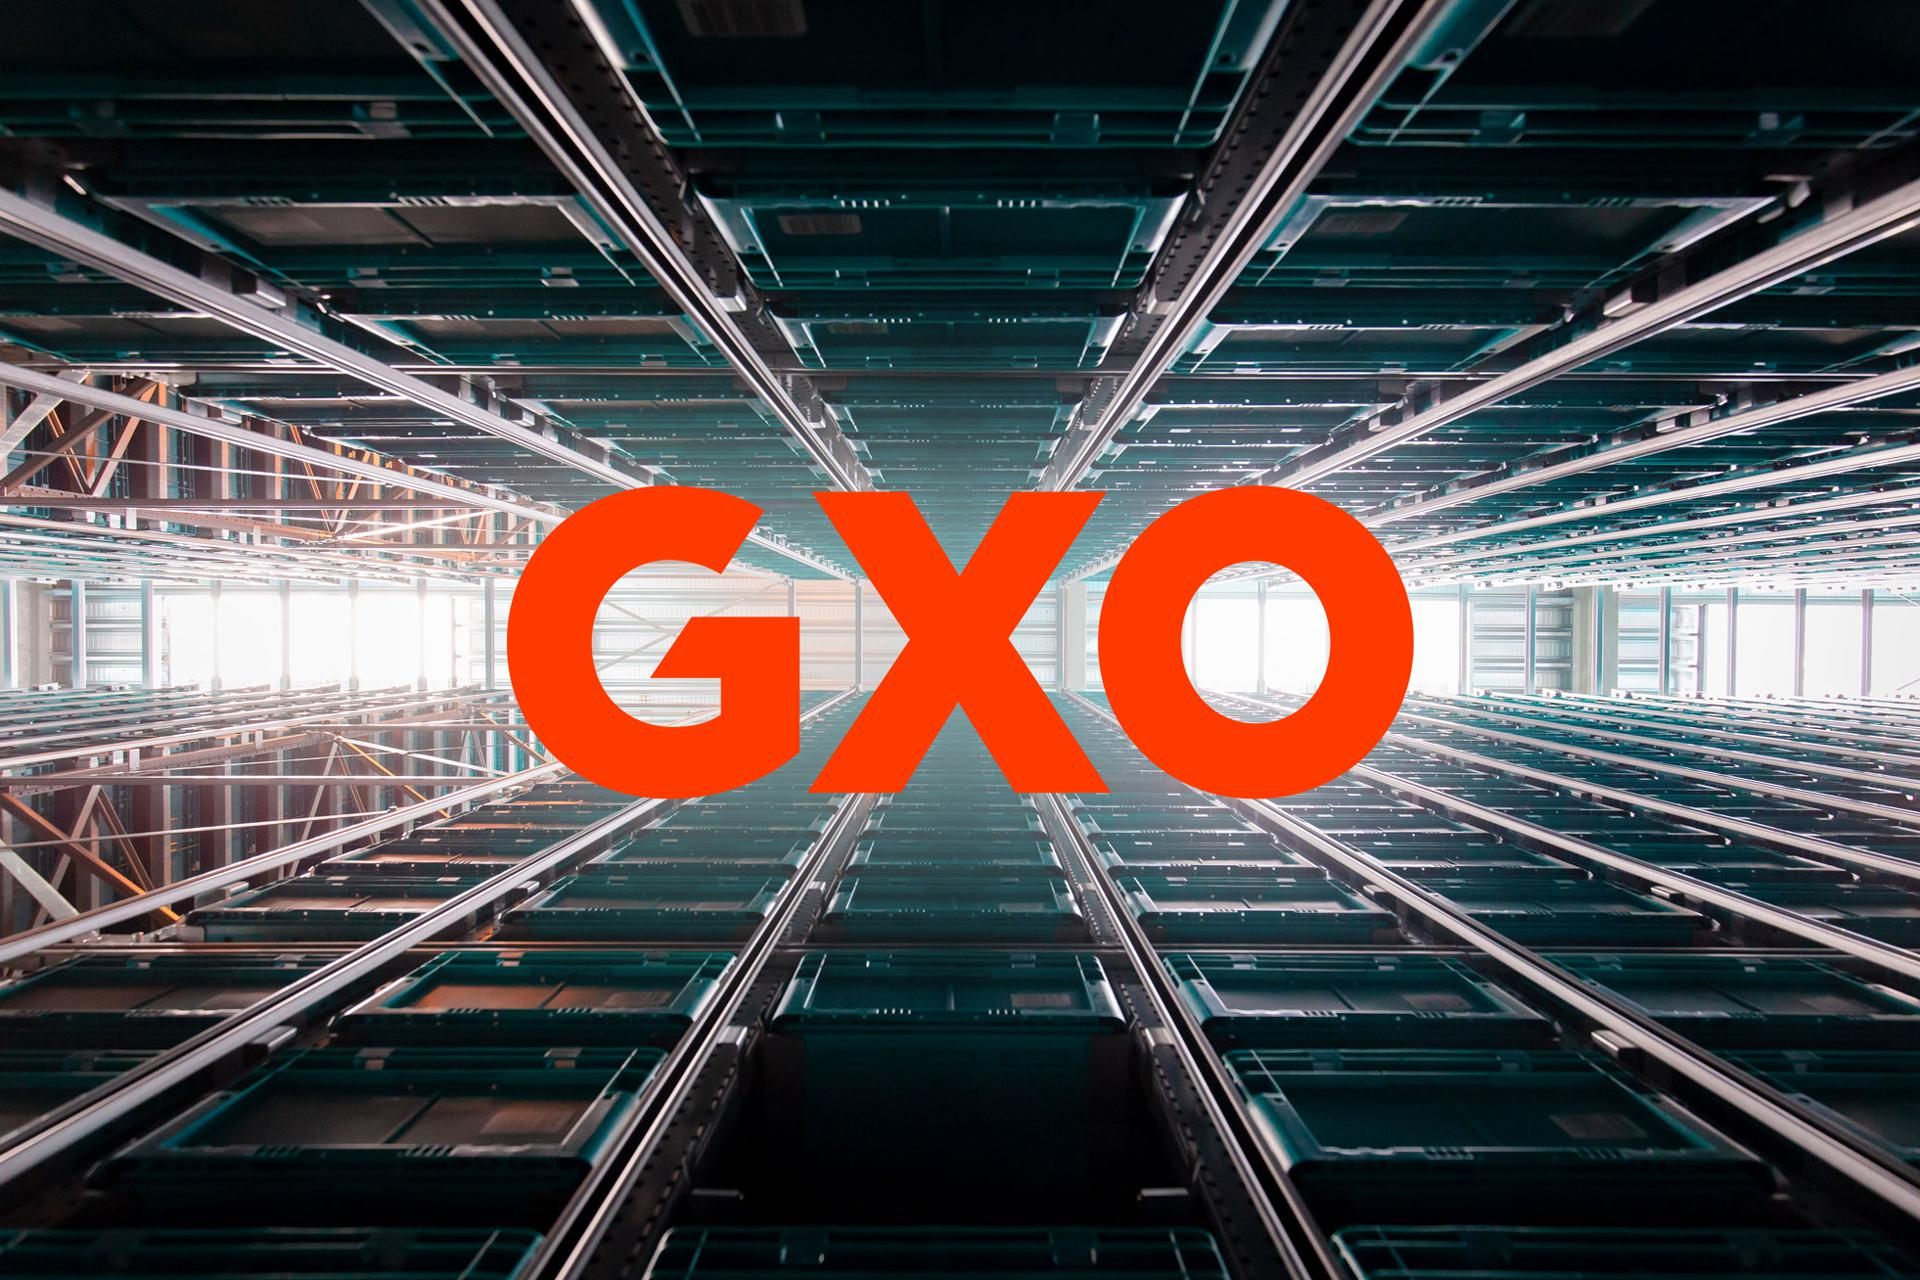 XPO Logistics Board of Directors Approves Separation of GXO Logistics and Declares the Distribution of GXO Shares